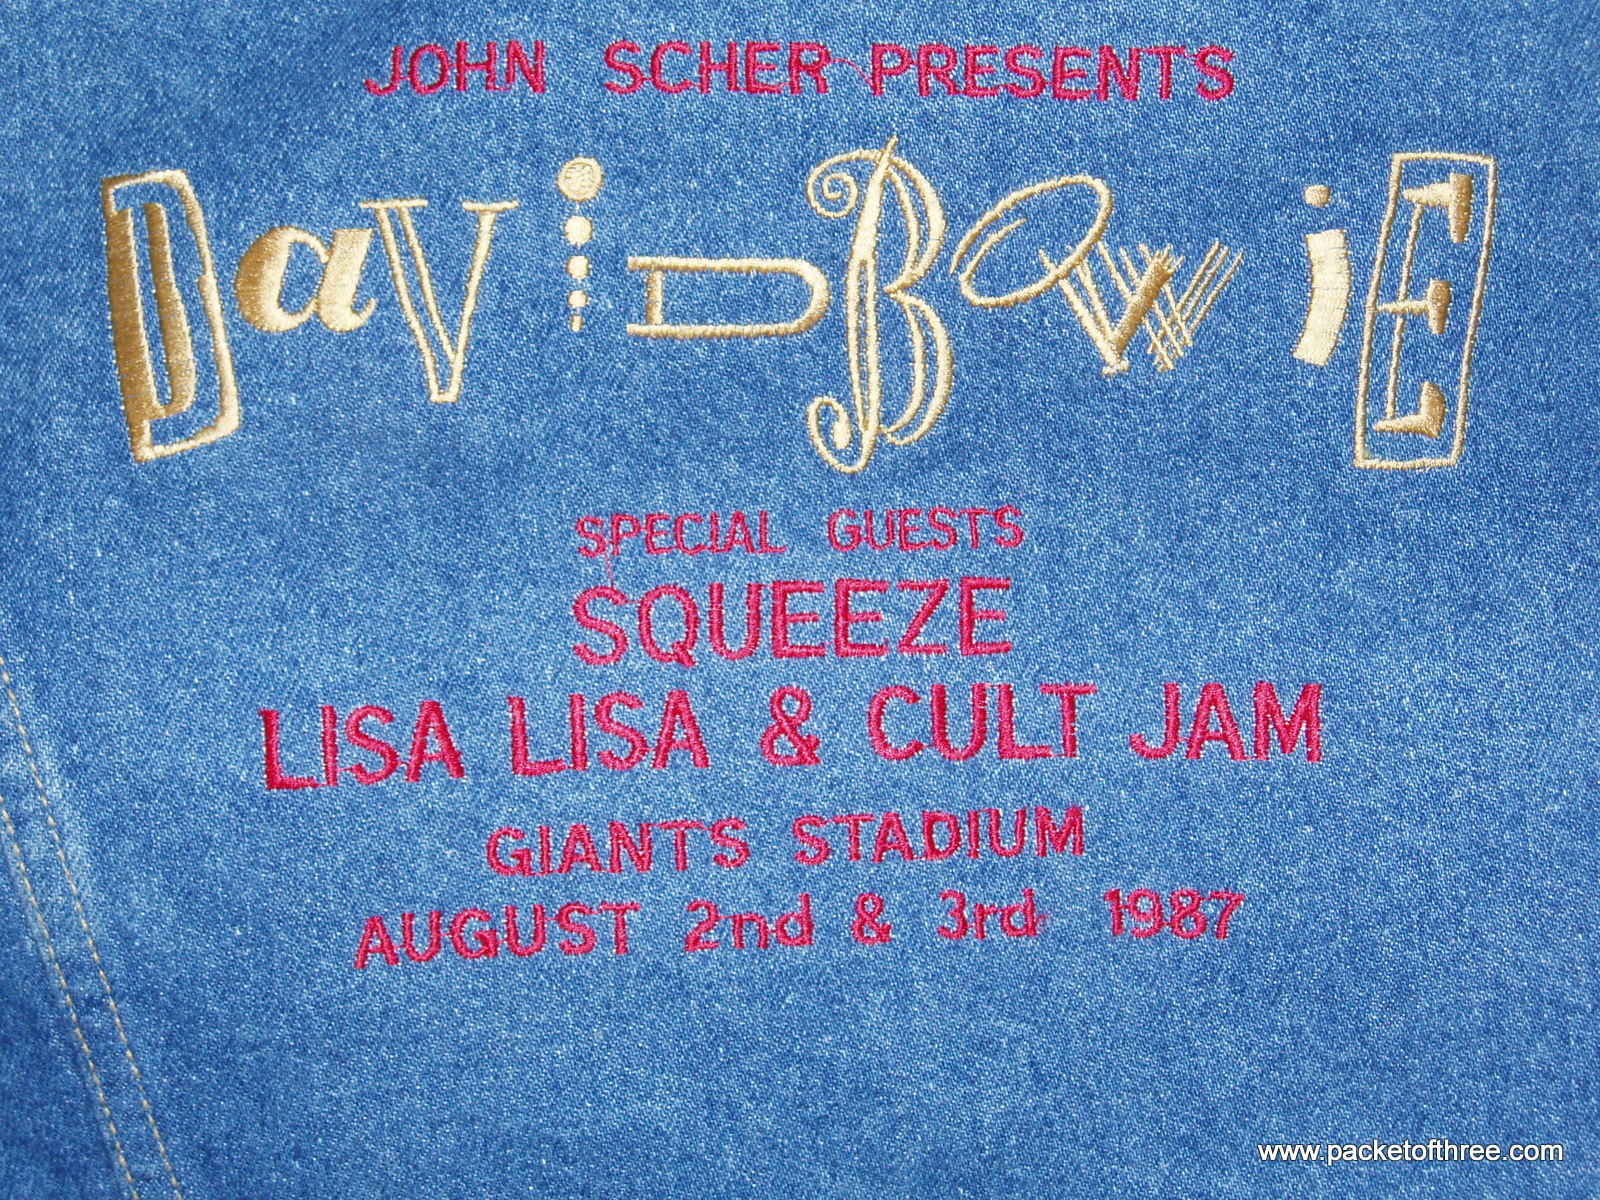 Glenn's Tour Jacket - August 1987